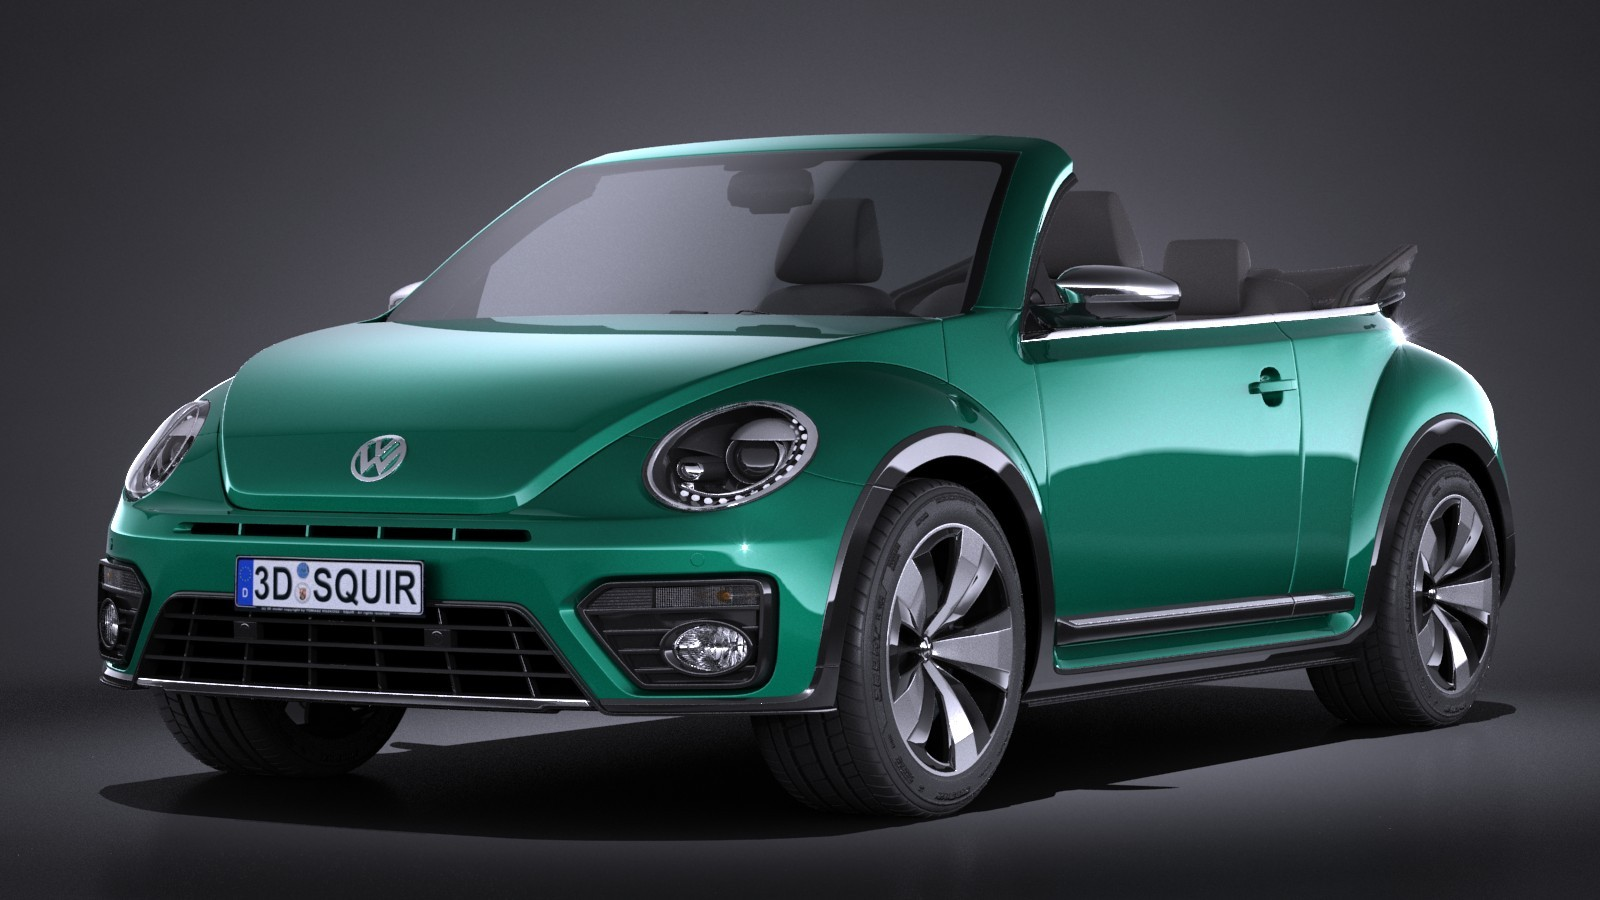 2019 Volkswagen Beetle Convertible photo - 3